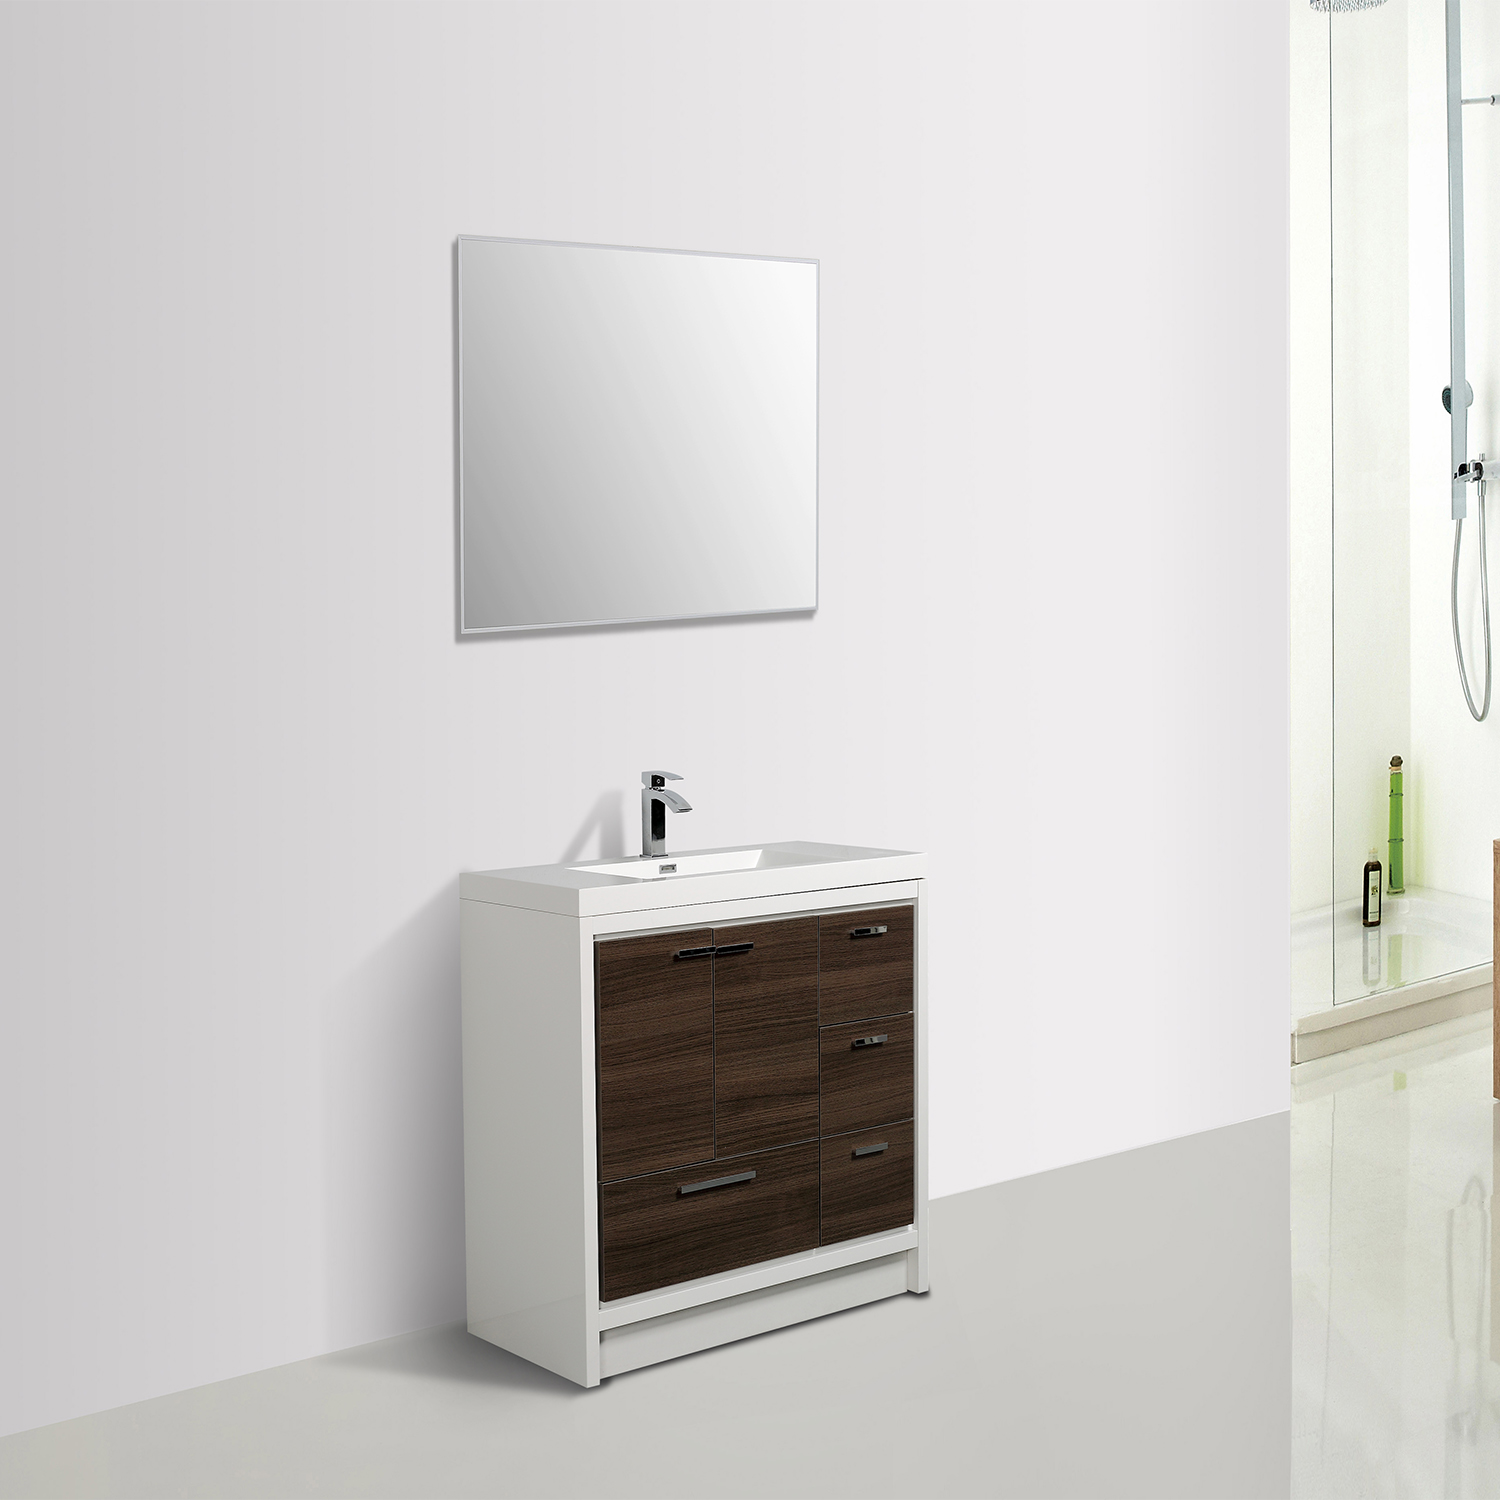 EVVN765 42GOK WH A Main - Eviva Grace 42 in. Gray Oak and White Bathroom Vanity with White Integrated Acrylic Countertop